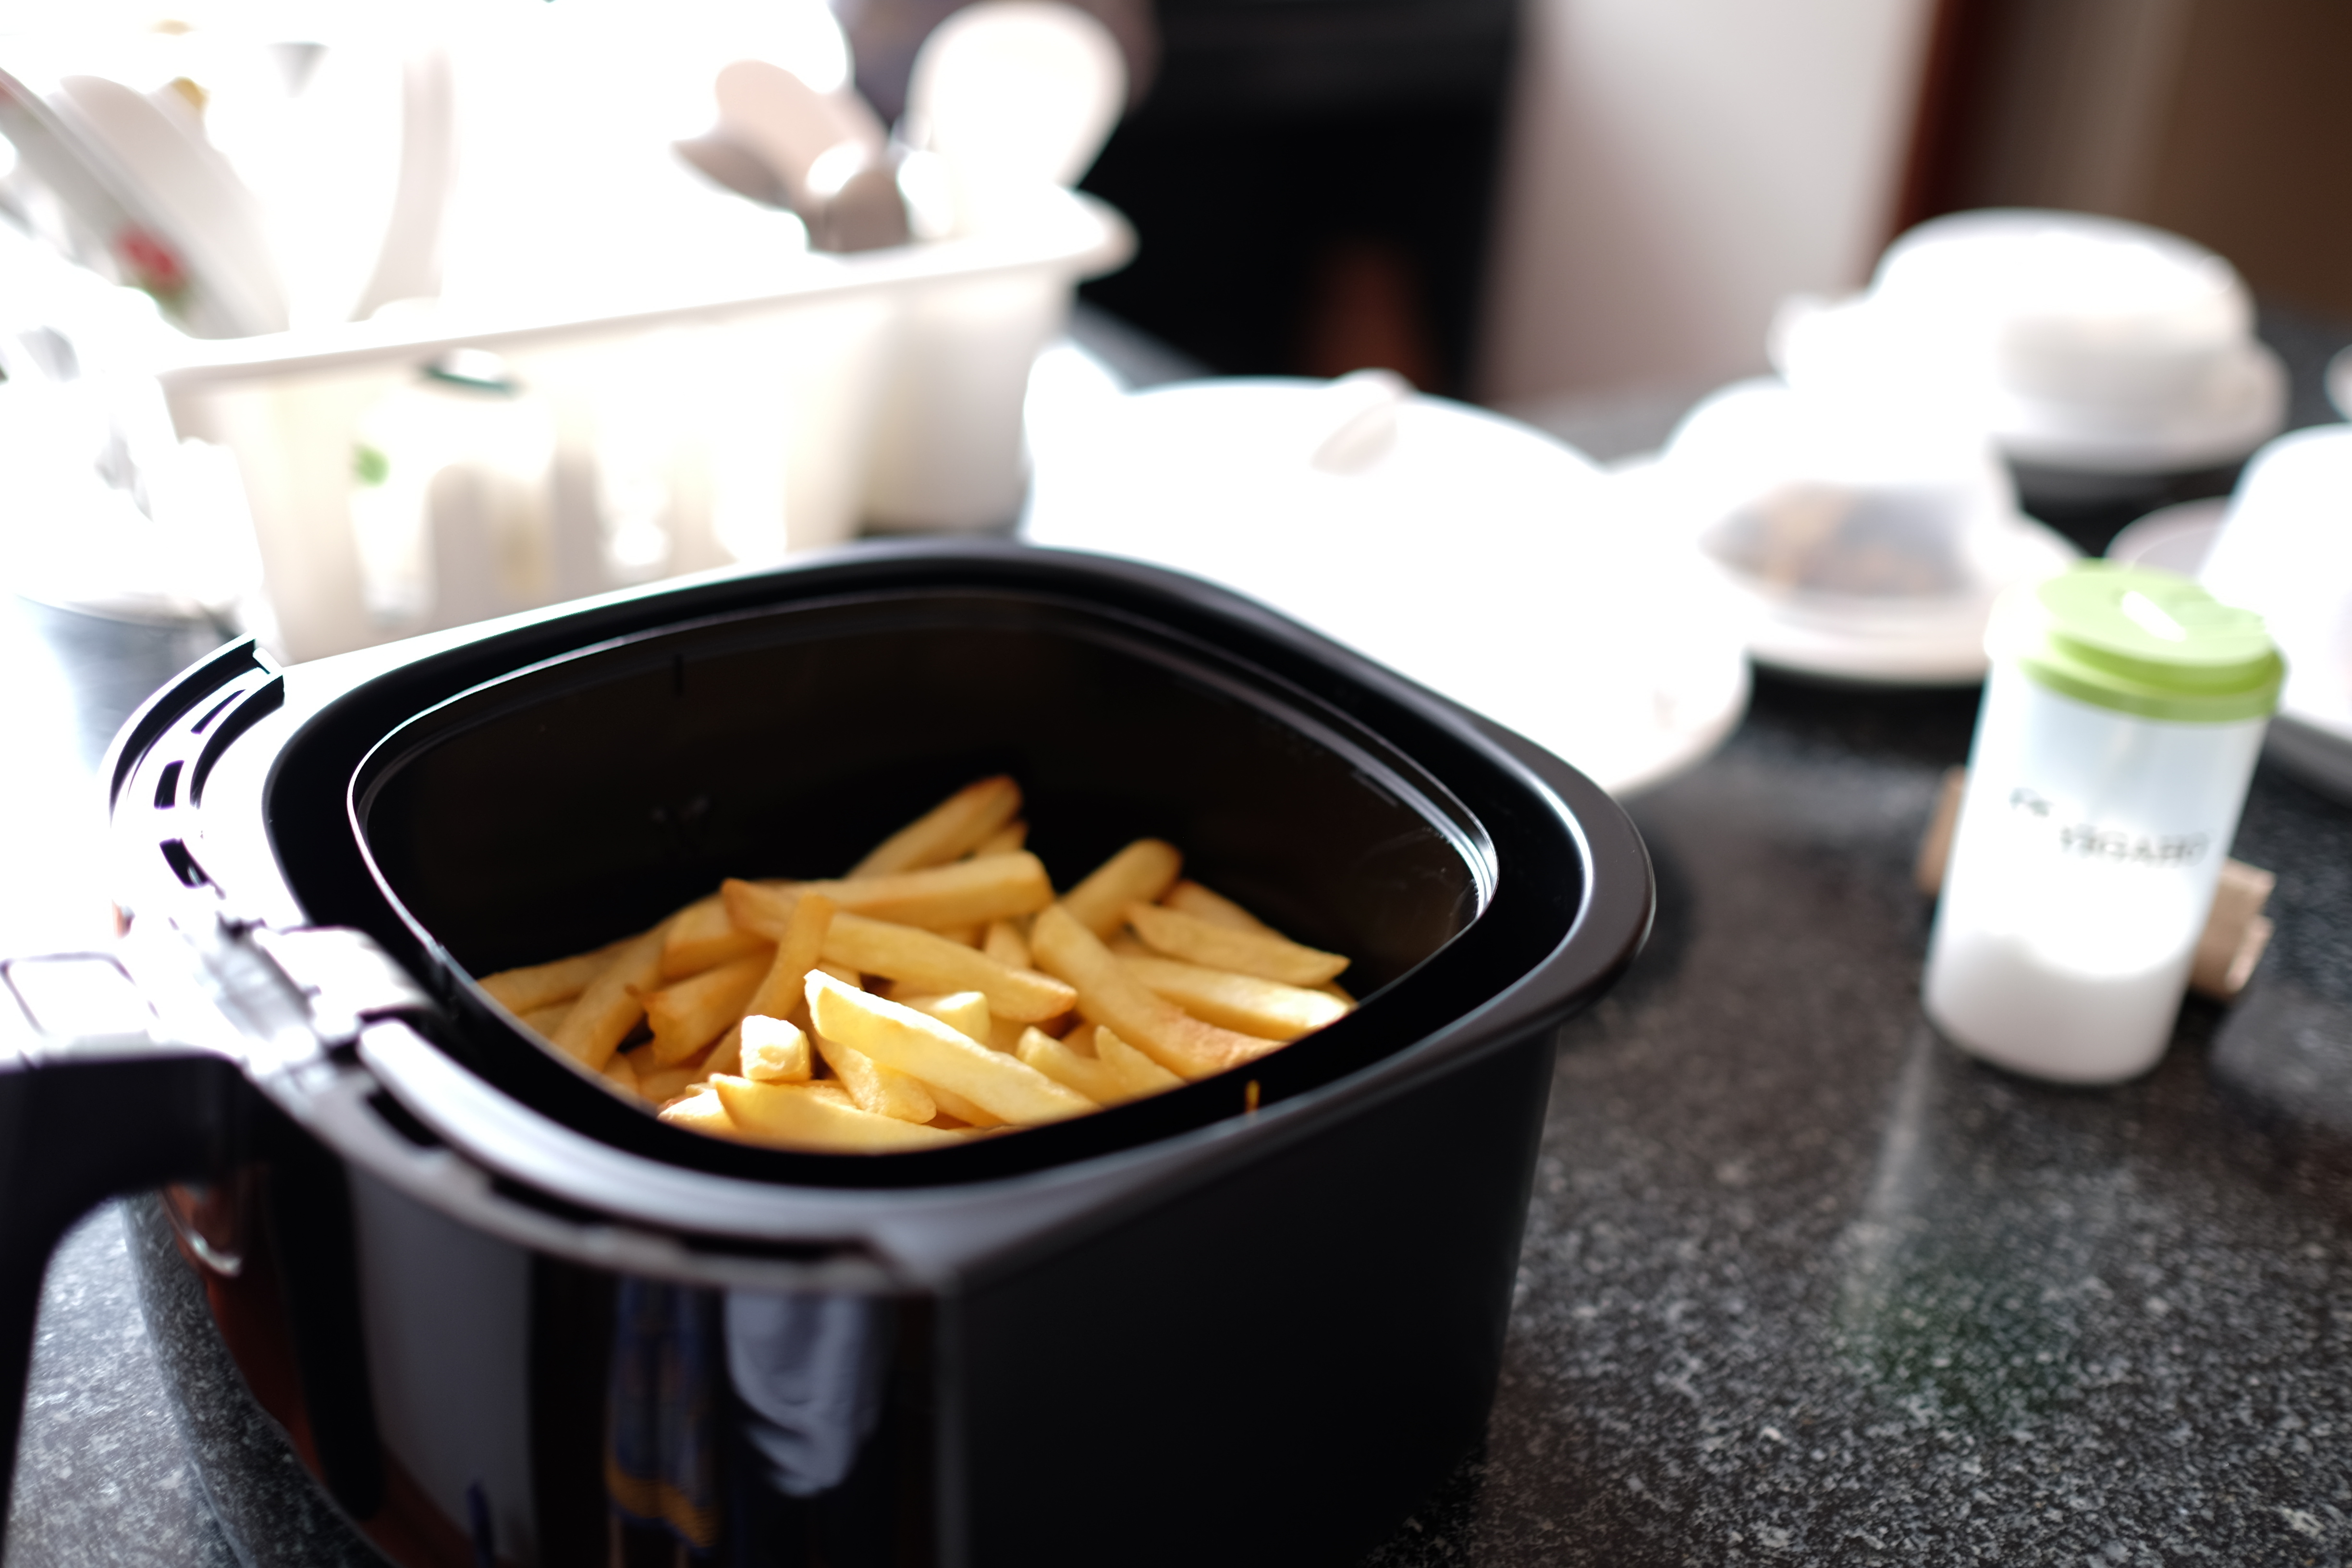 air-fryer for oil-free cooking